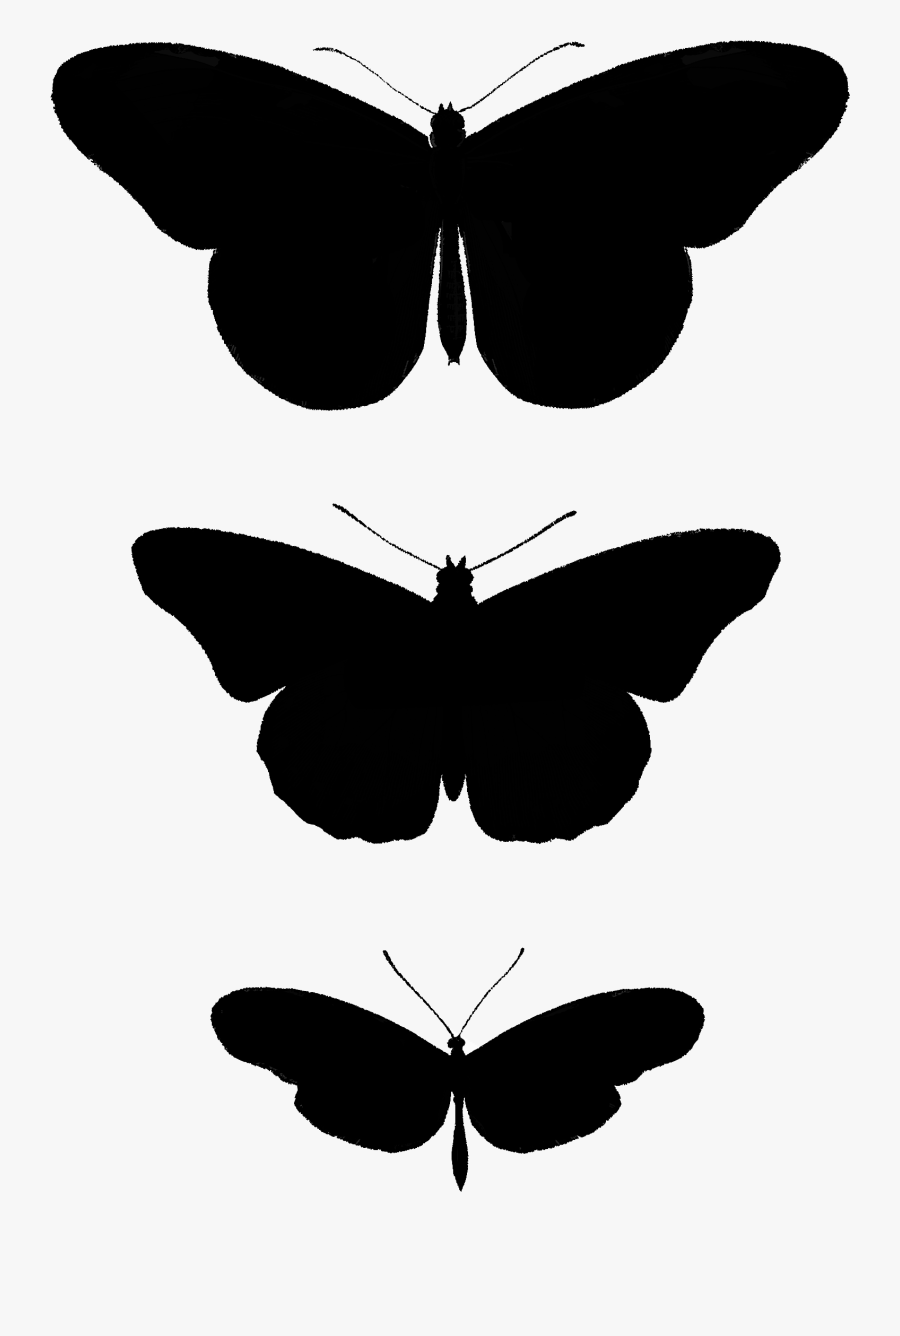 2267 Butterfly Silhouettes Free Vintage Clip Art➢ Download - Brush-footed Butterfly, Transparent Clipart